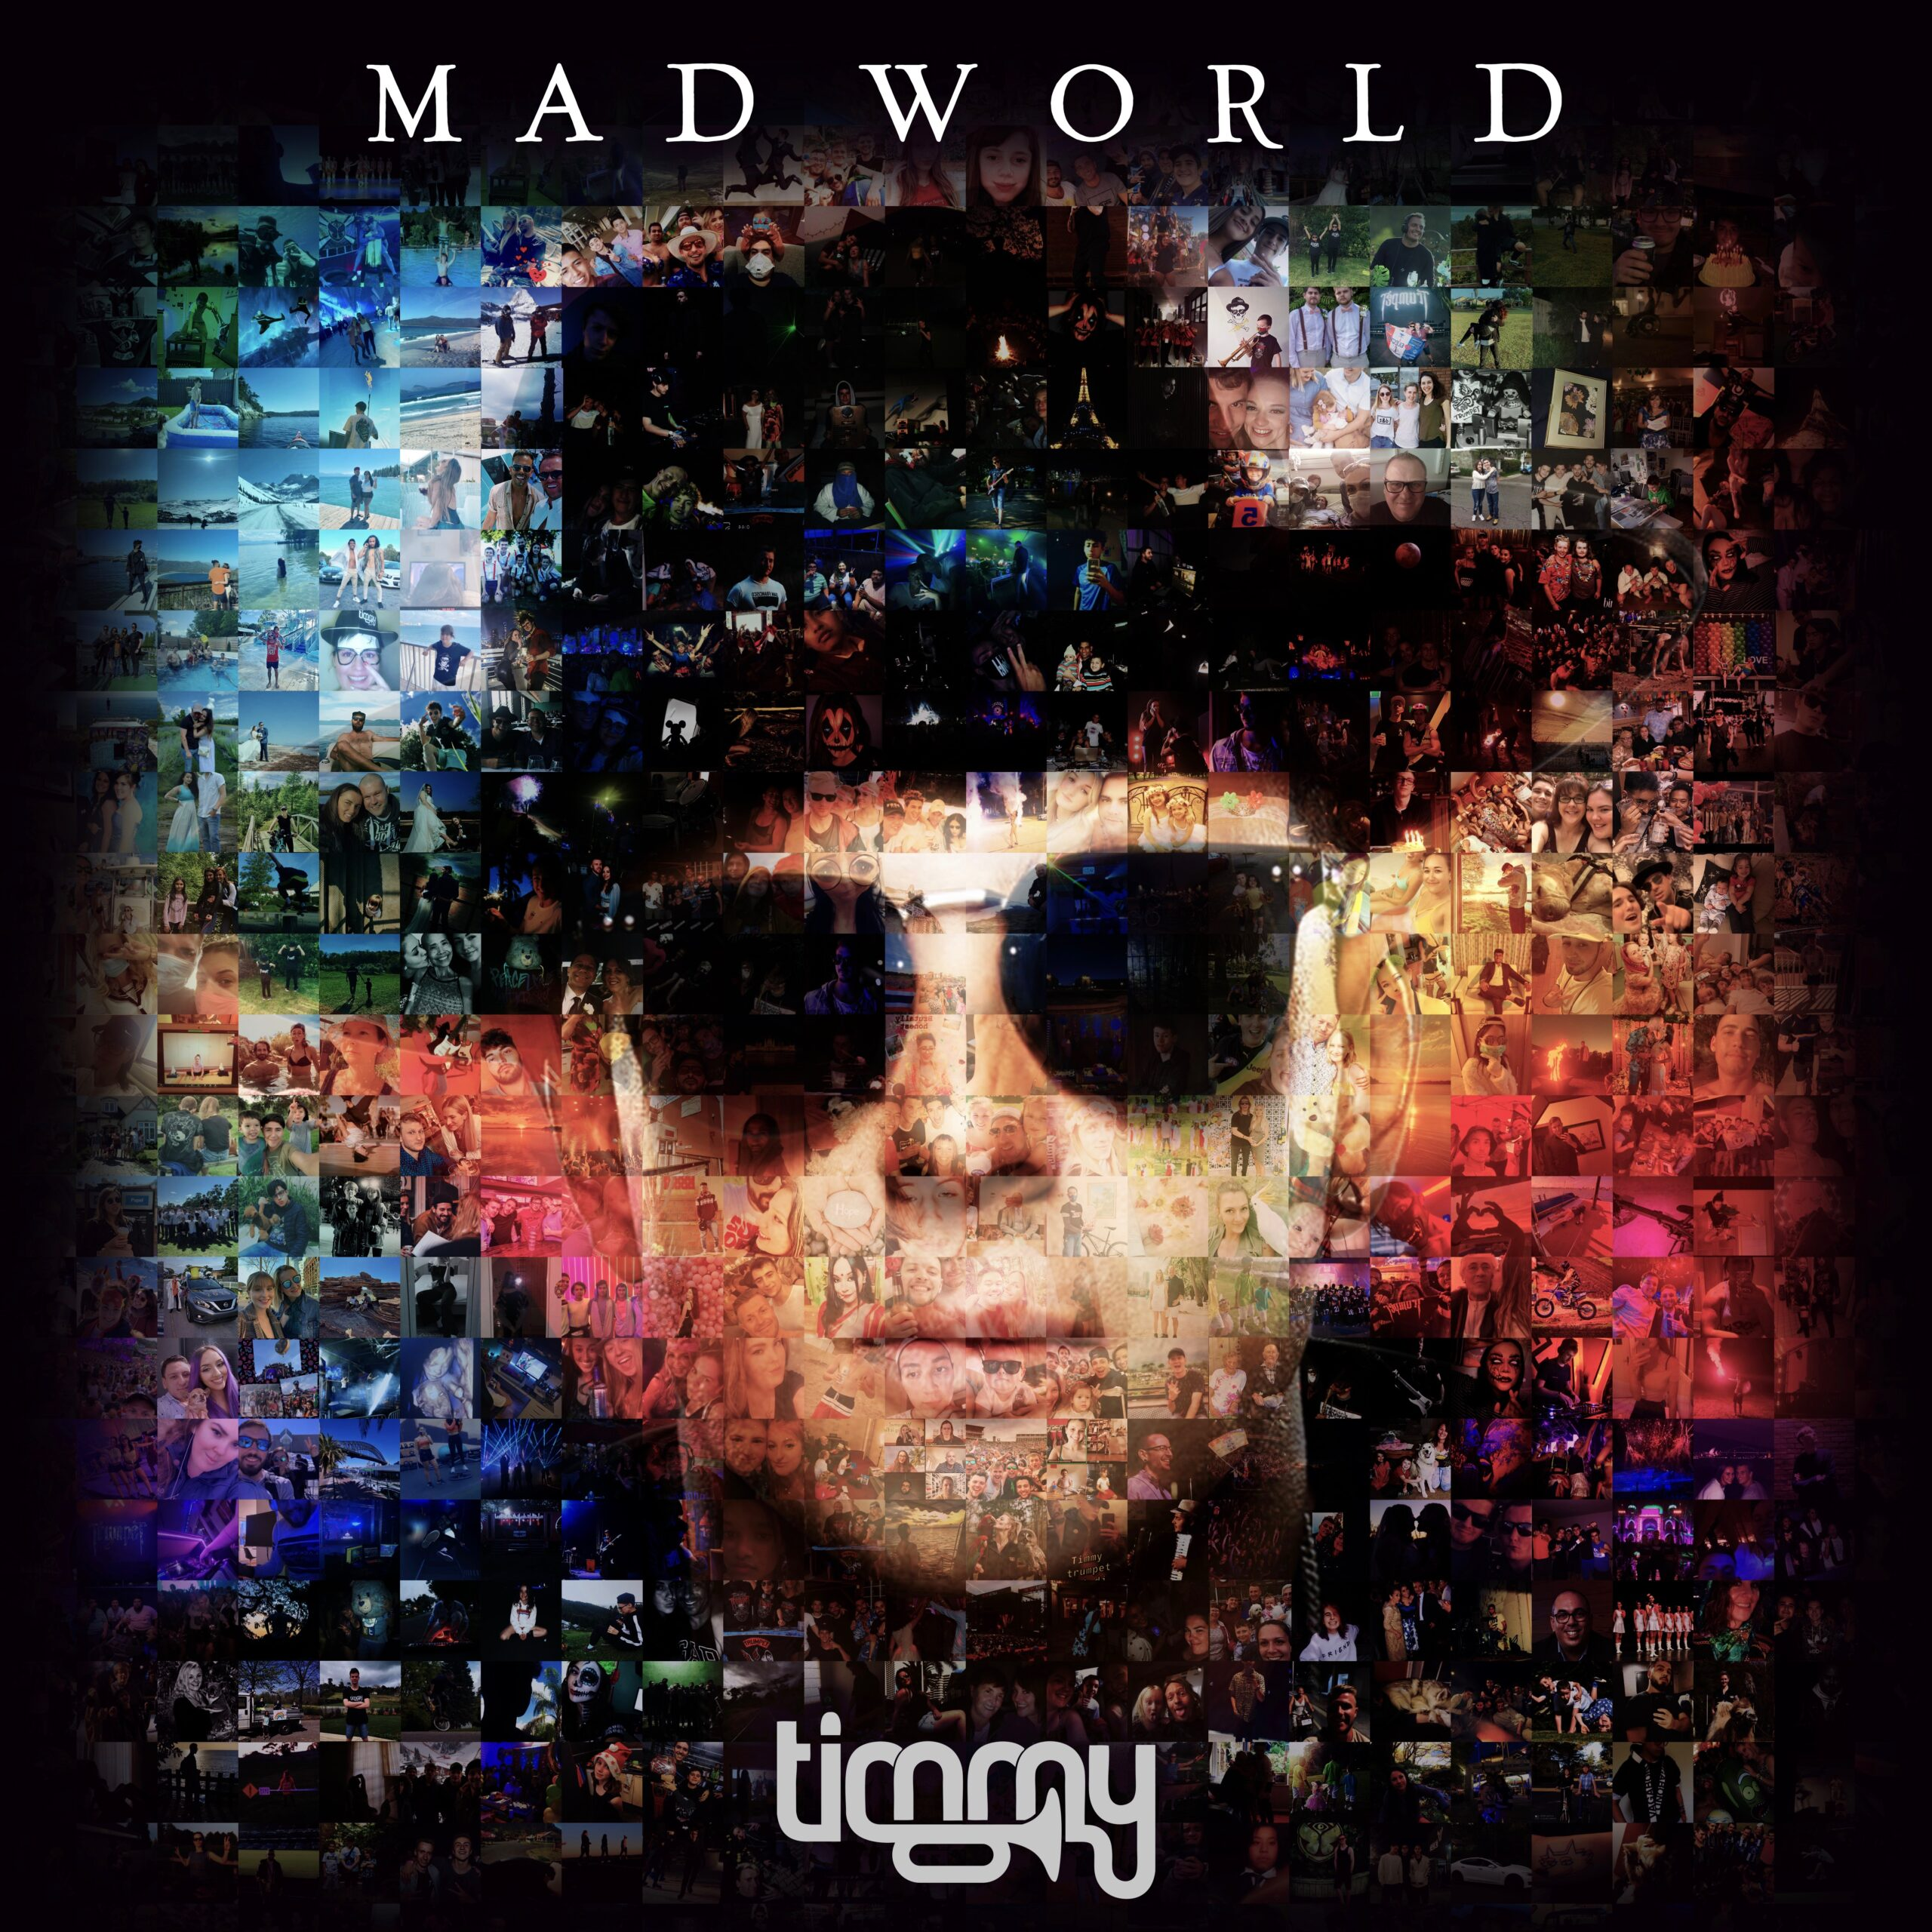 Mad World Album Artwork Shaun Barker (Timmy Trumpet)